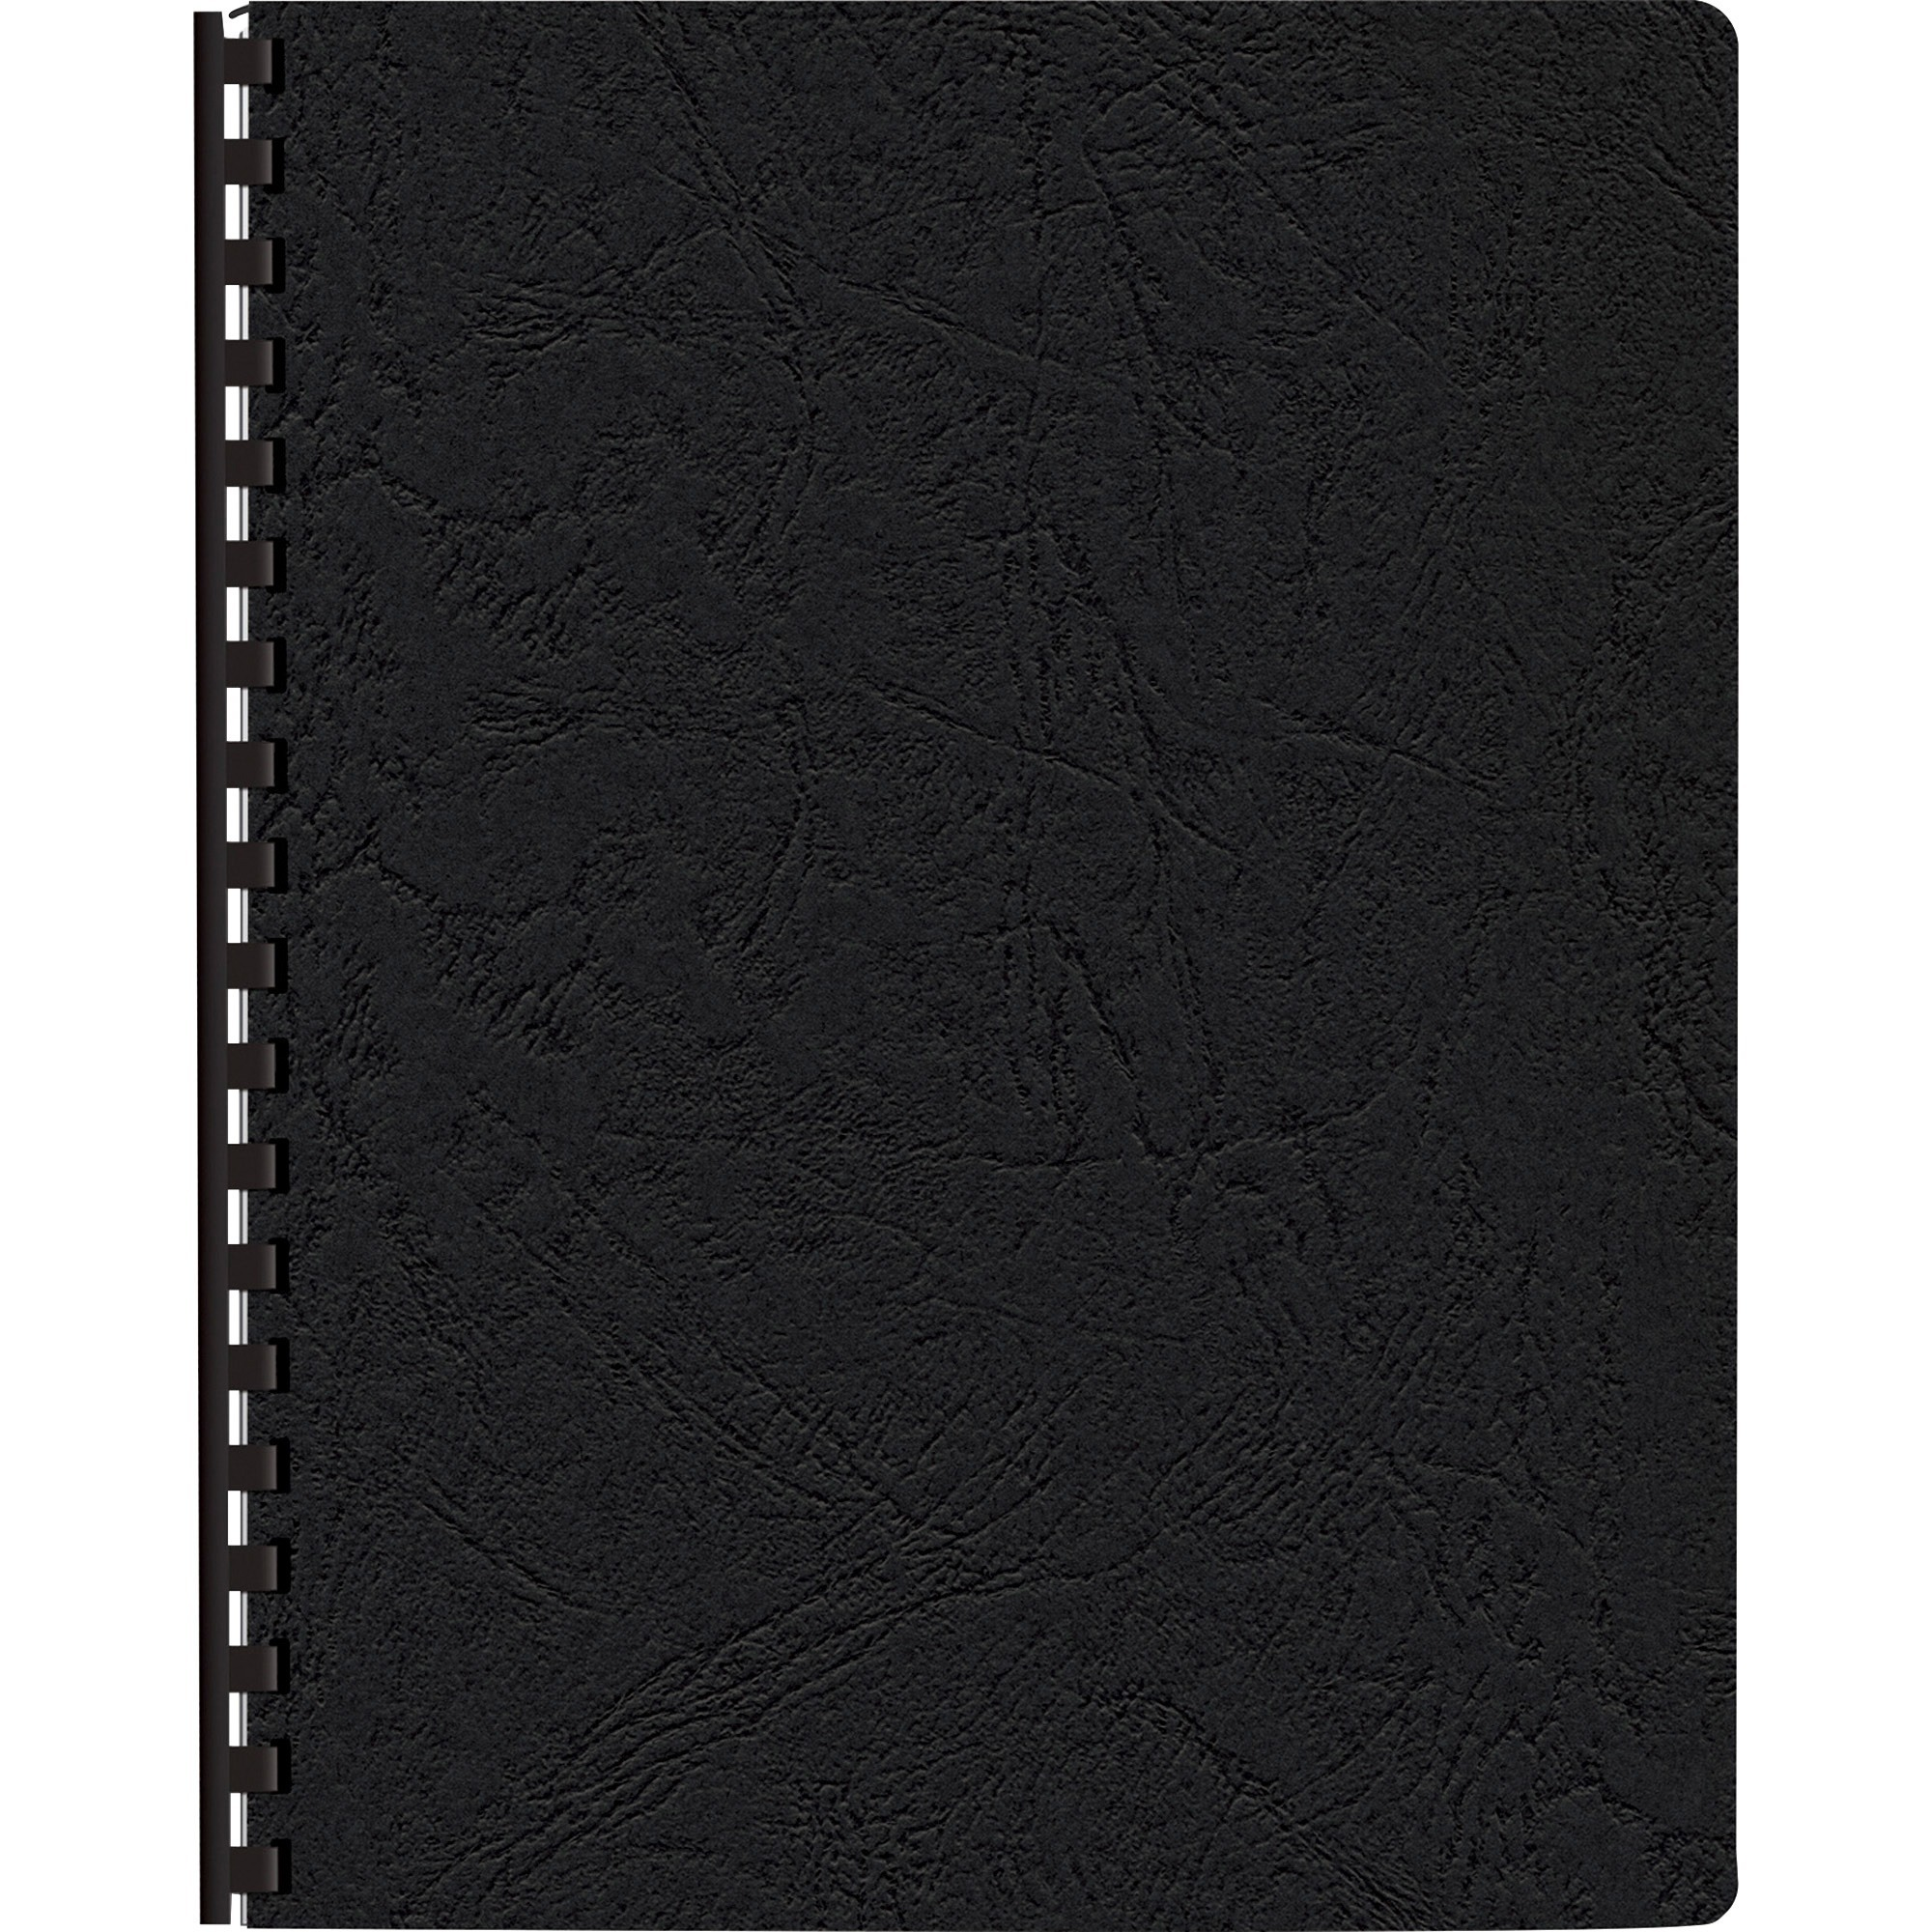 Fellowes, FEL52138, Expressions Premium Textured Covers, 200 / Pack, Black